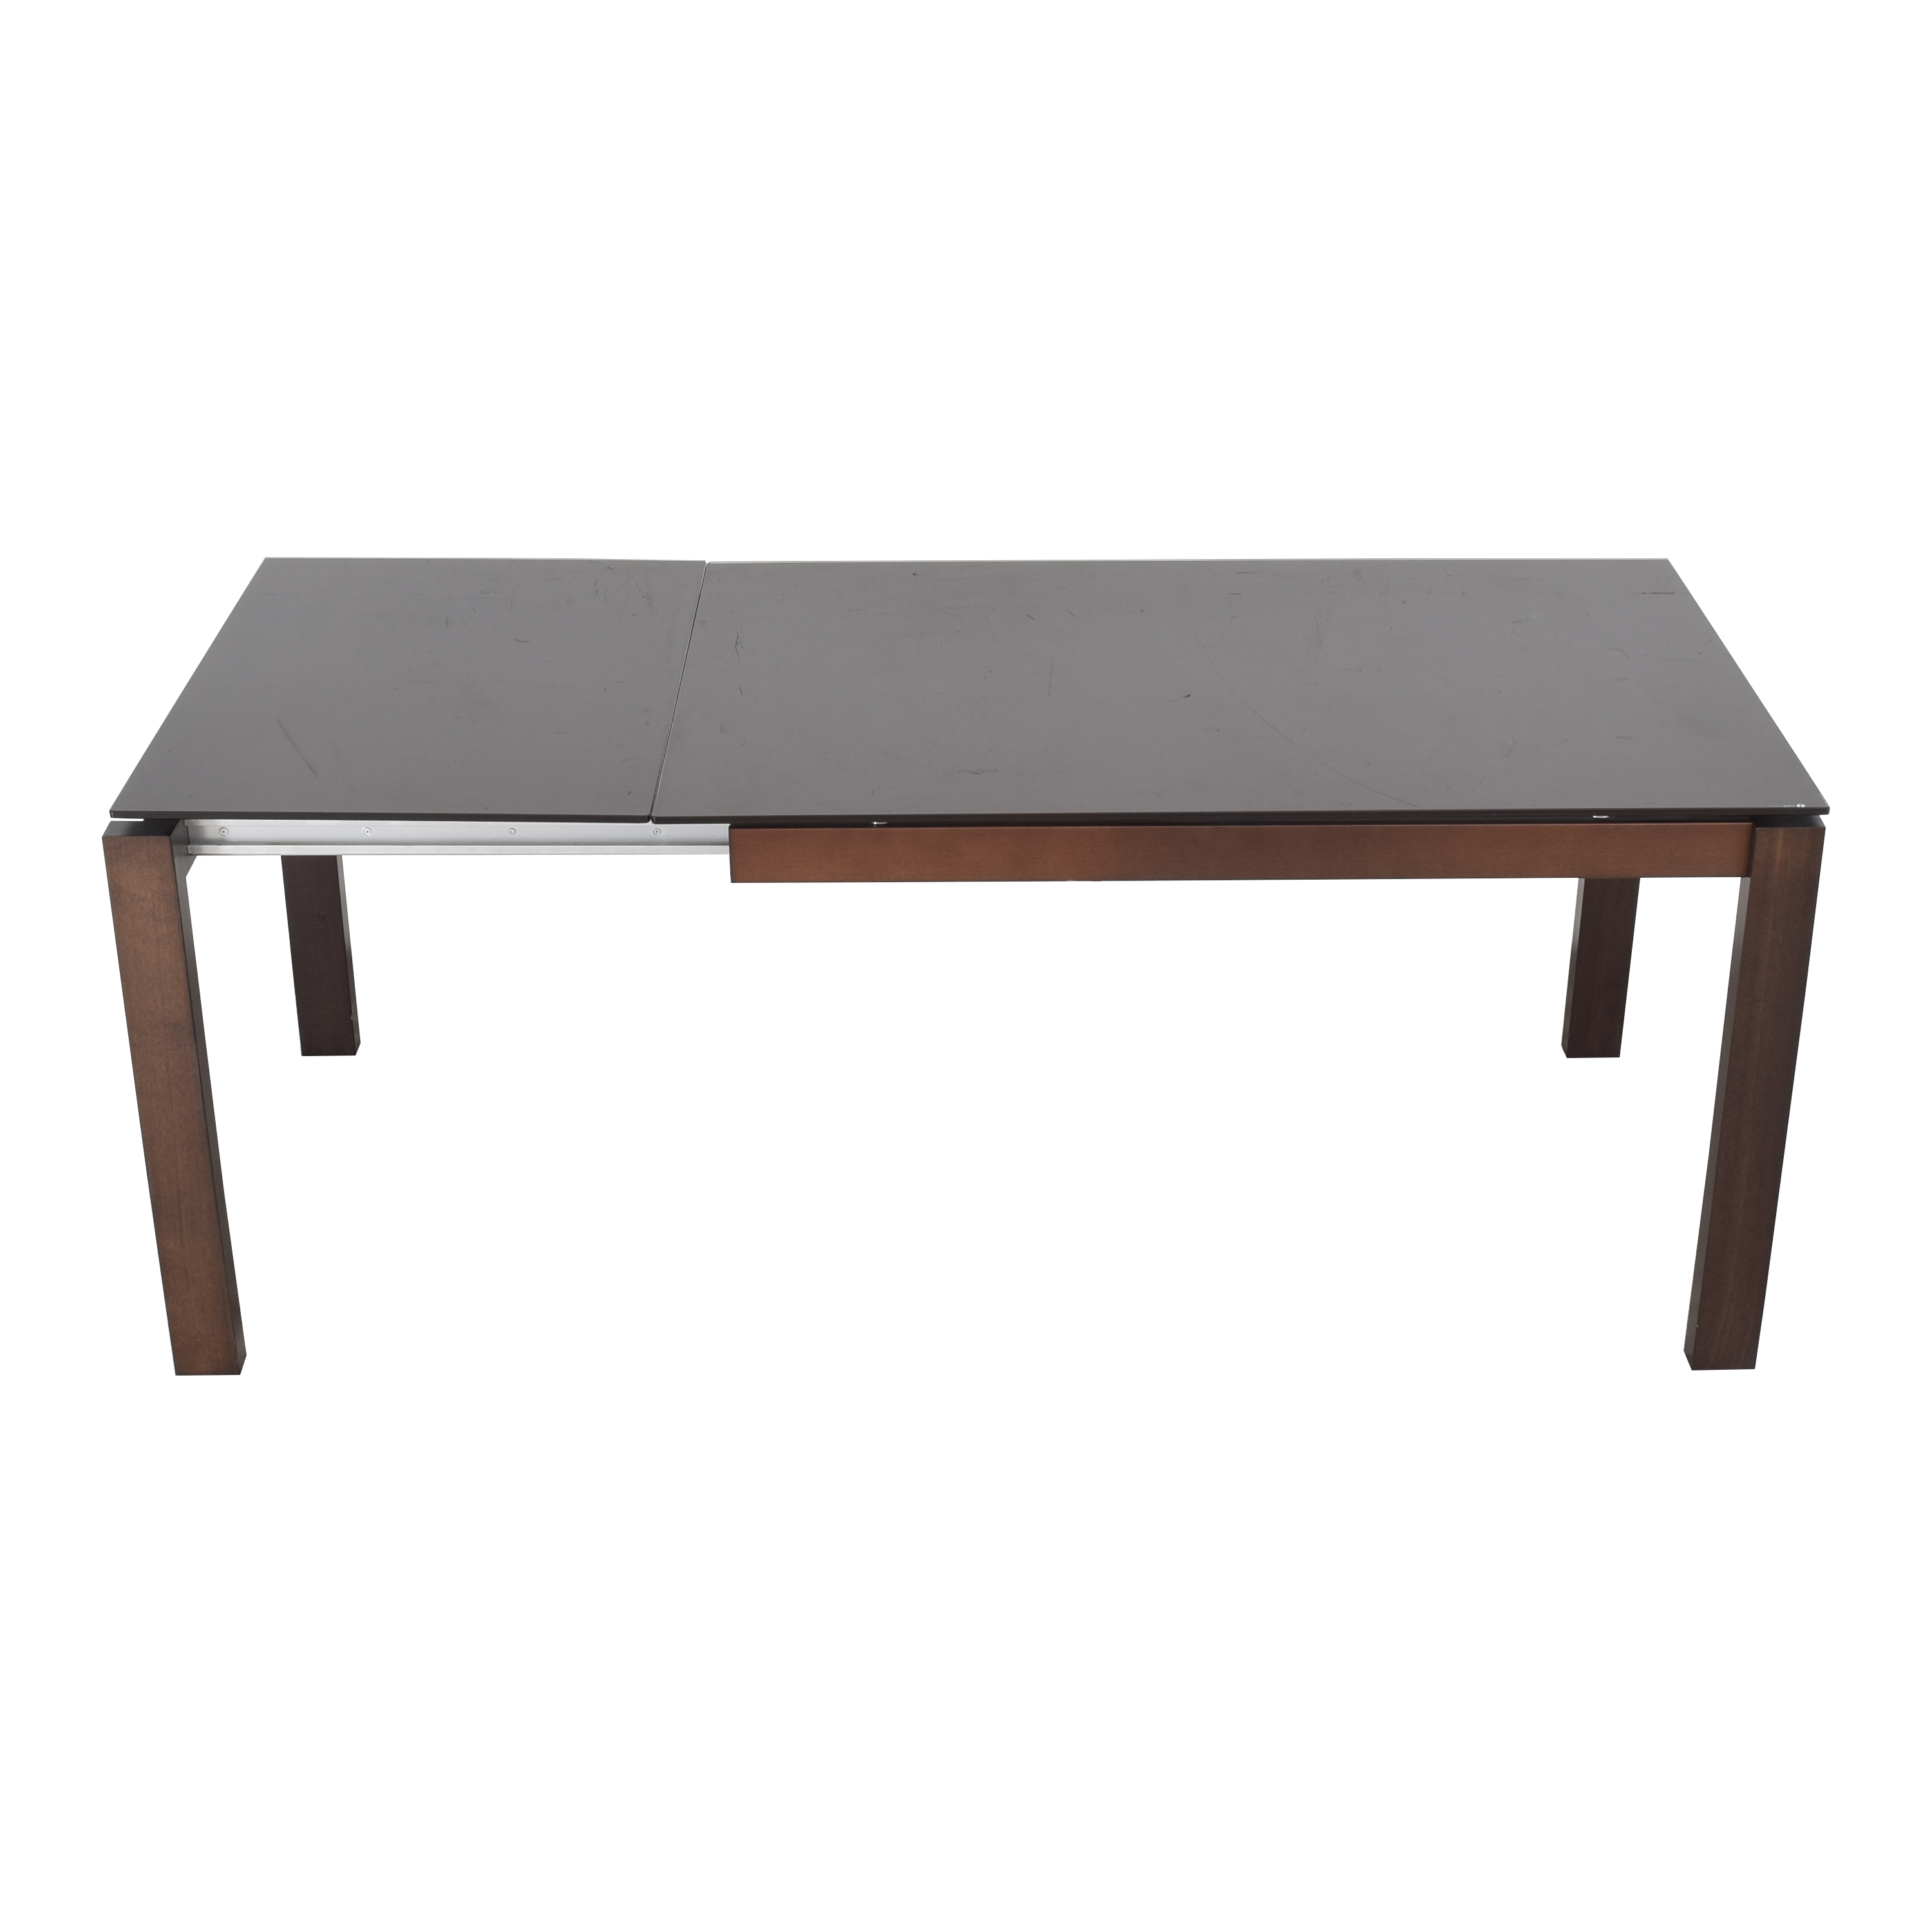 Calligaris Calligaris Extending Dining Table ct